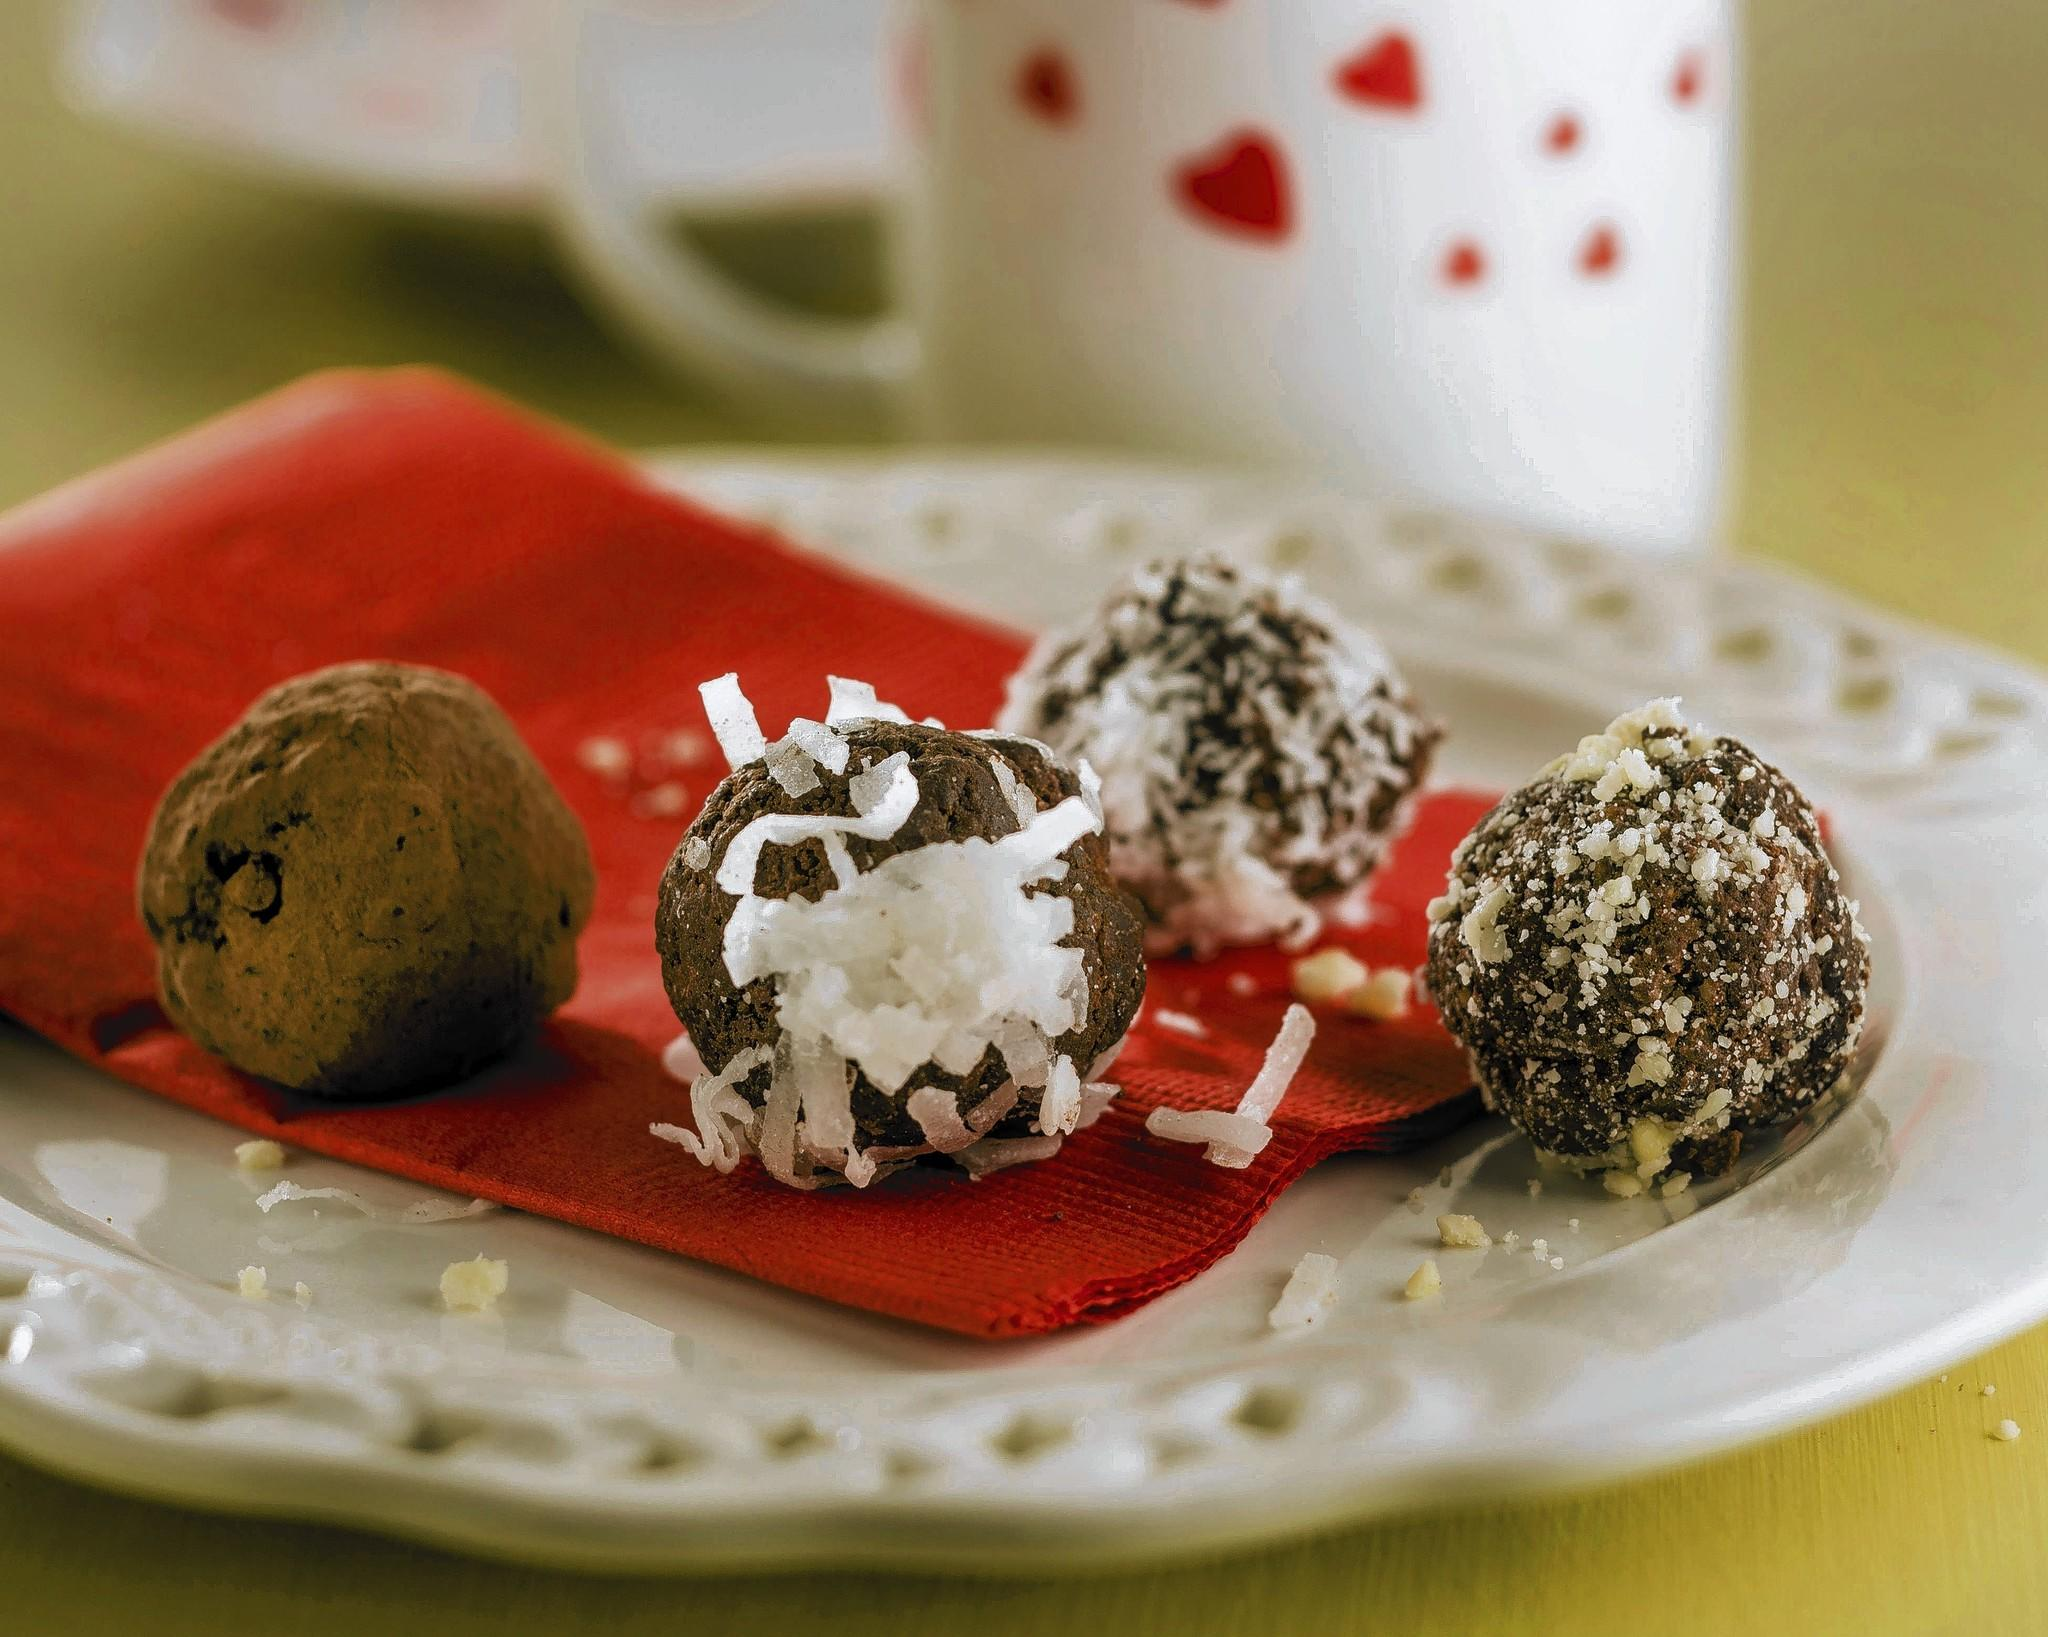 Vegan mocha truffles for Valentine's Day. (Bill Hogan, Chicago Tribune ...